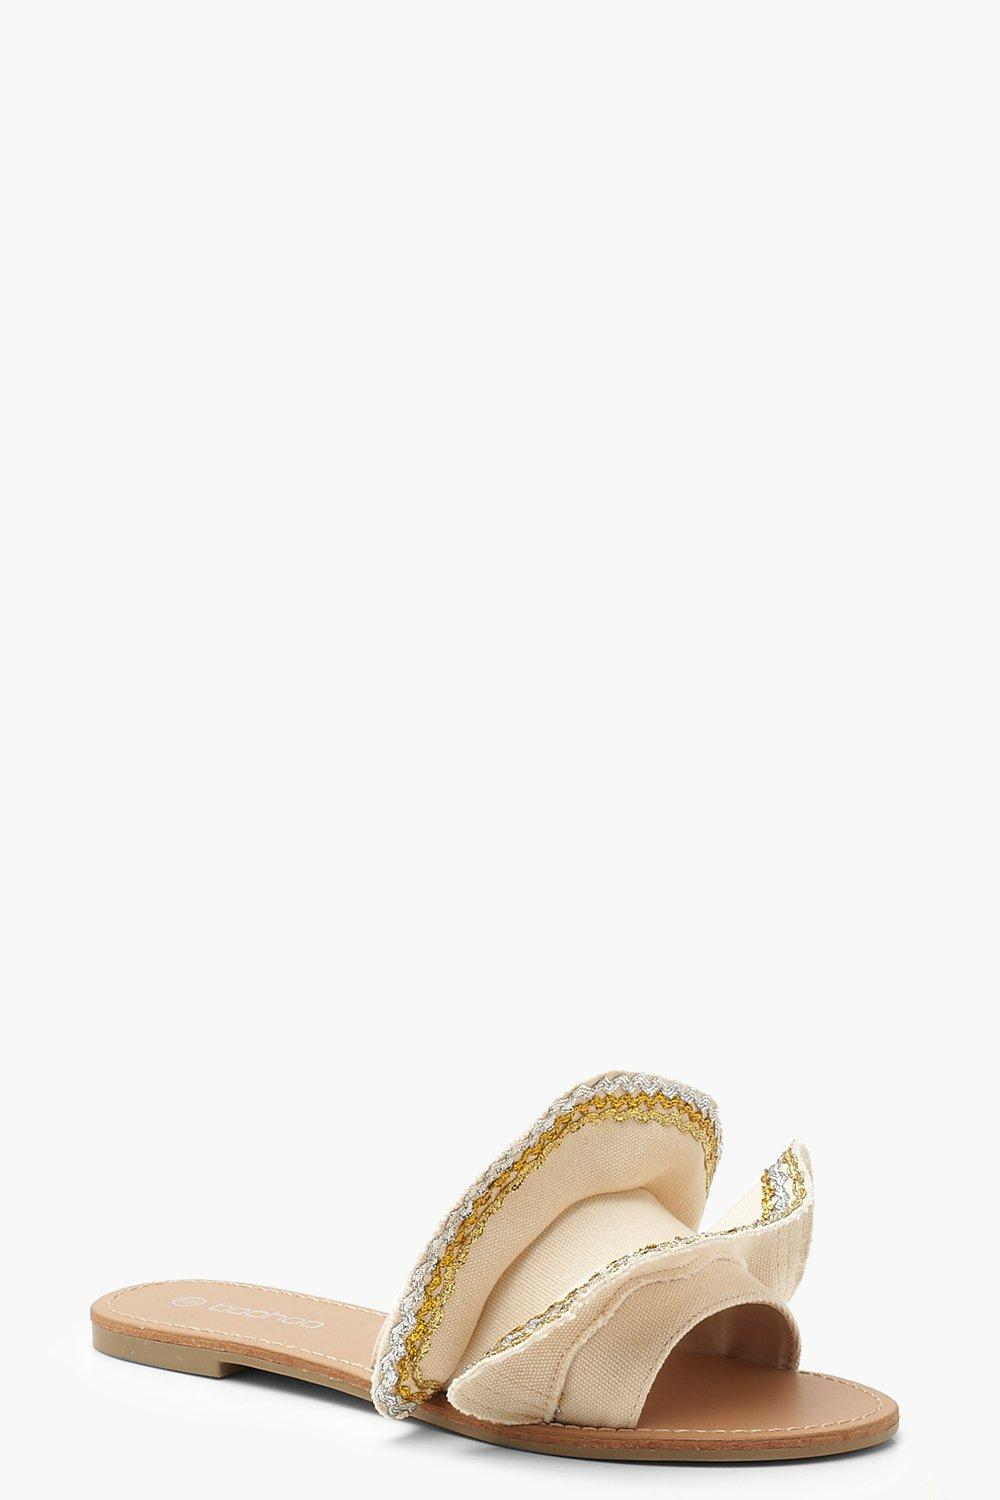 boohoo Womens Canvas Metallic Frill Sliders - Beige - 7, Beige